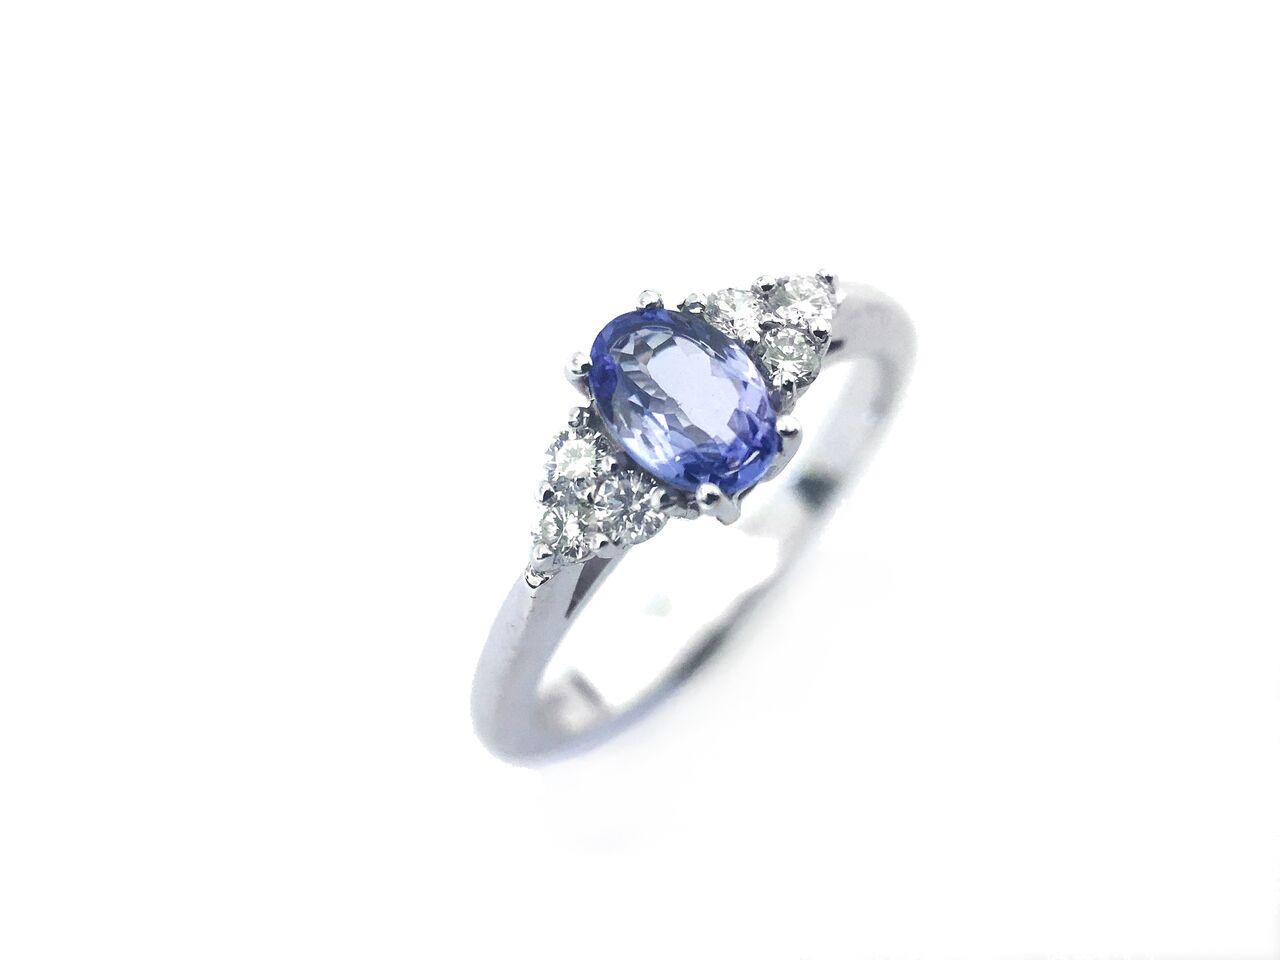 real ring engagement gold women shape fancy rings in pear white tanzanite from for item halo natural wedding jewelry